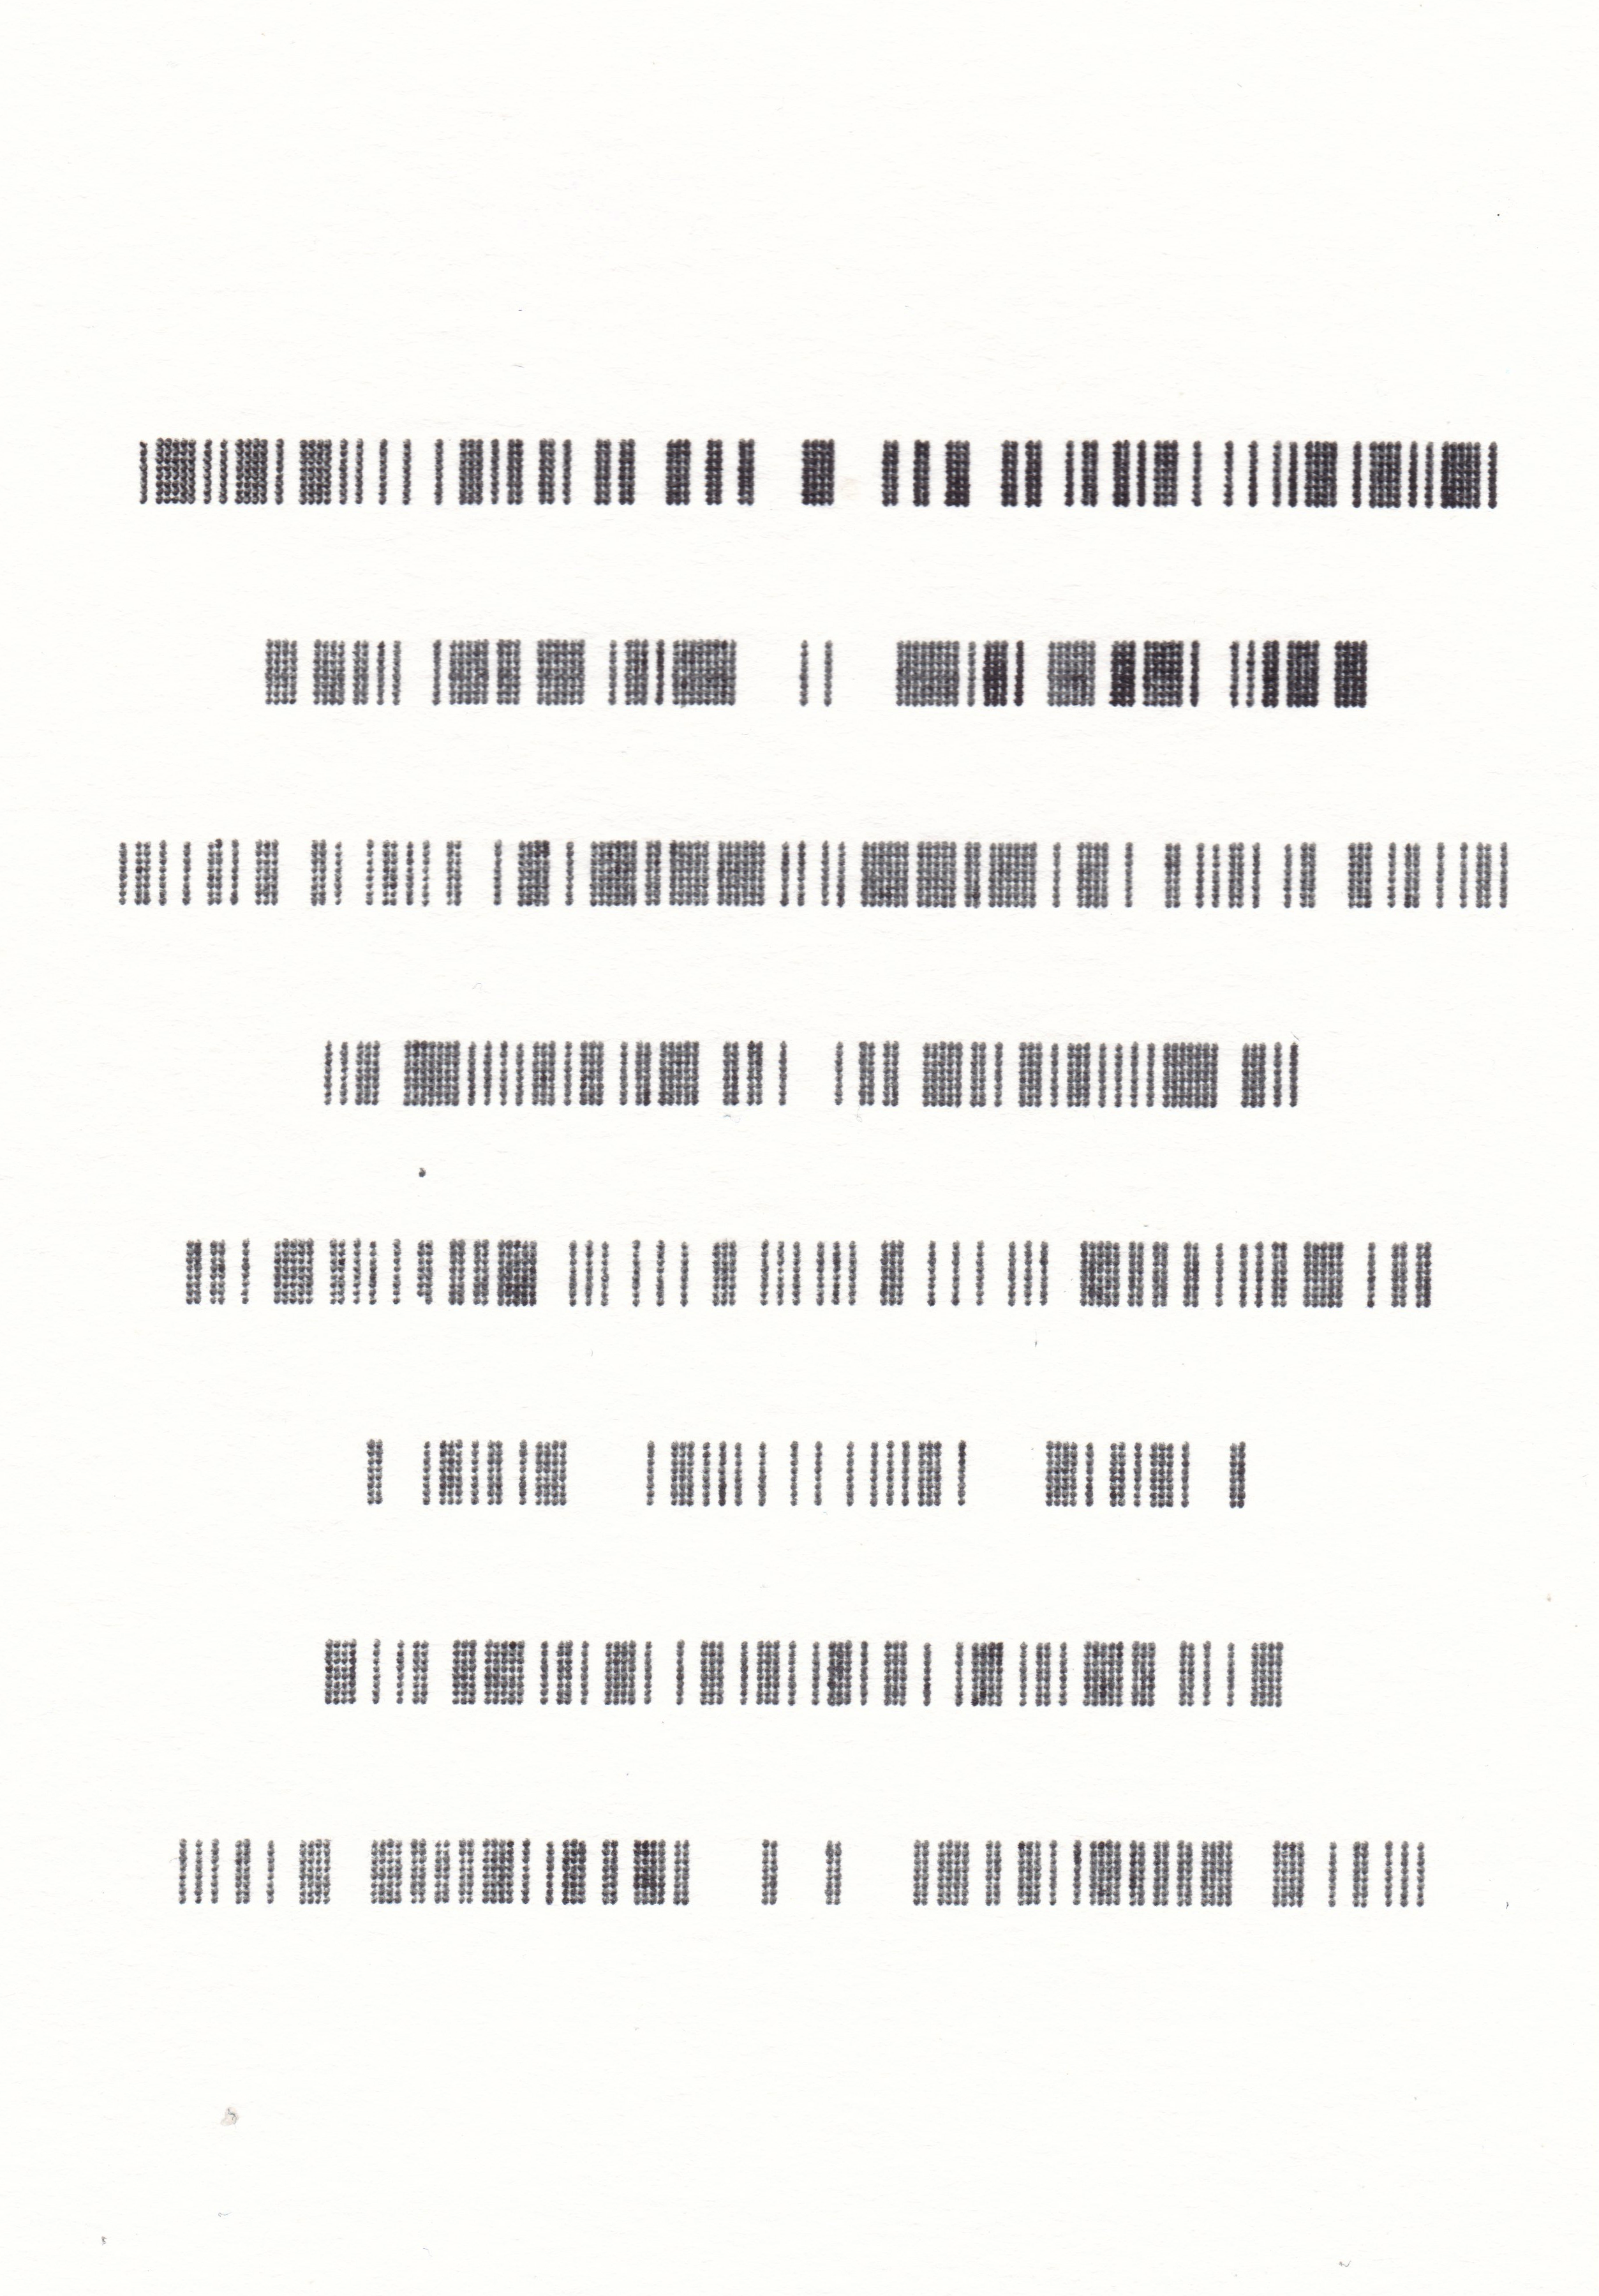 Deconstructed Barcodes